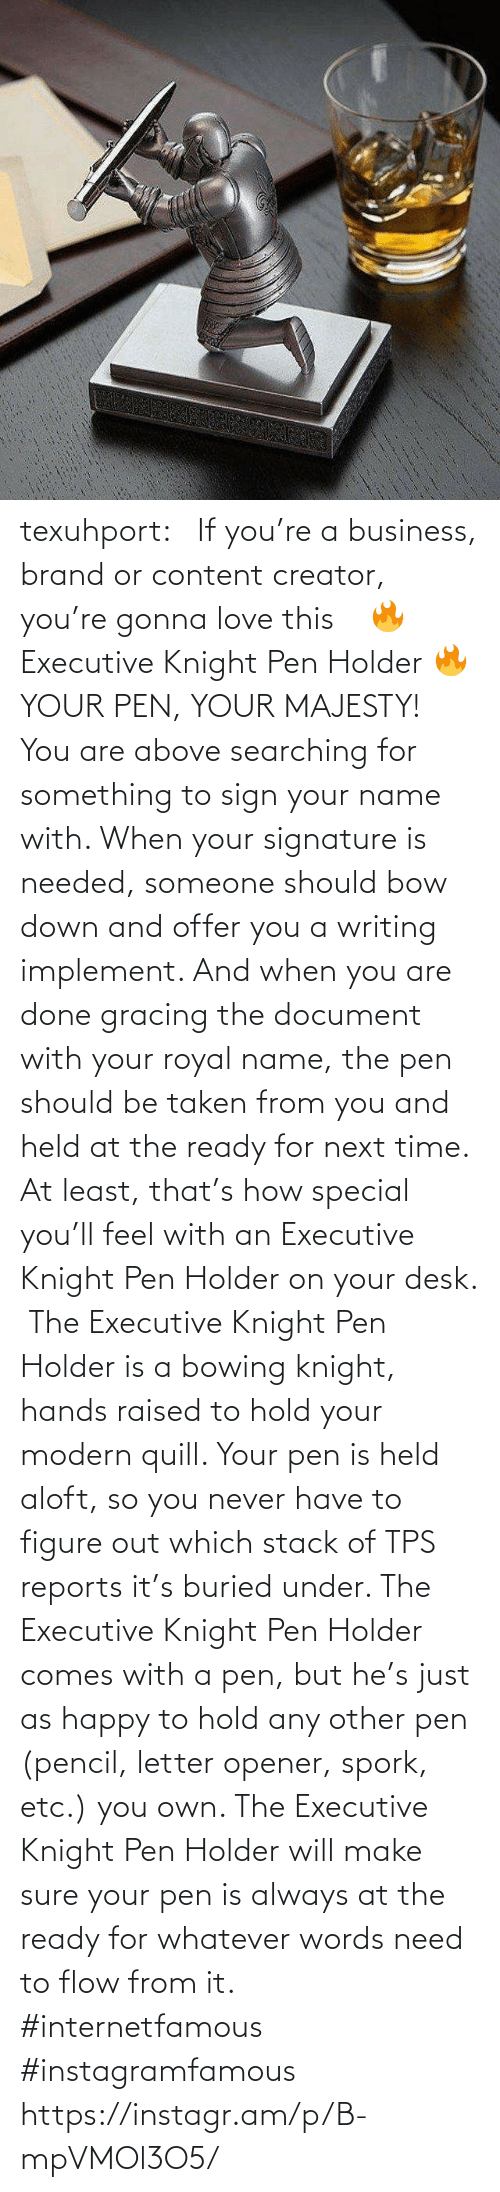 Desk: texuhport:⎆ If you're a business, brand or content creator, you're gonna love this ⎆⁣ 🔥 Executive Knight Pen Holder 🔥⁣ YOUR PEN, YOUR MAJESTY!⁣ ⁣ You are above searching for something to sign your name with. When your signature is needed, someone should bow down and offer you a writing implement. And when you are done gracing the document with your royal name, the pen should be taken from you and held at the ready for next time. At least, that's how special you'll feel with an Executive Knight Pen Holder on your desk.⁣ ⁣ The Executive Knight Pen Holder is a bowing knight, hands raised to hold your modern quill. Your pen is held aloft, so you never have to figure out which stack of TPS reports it's buried under. The Executive Knight Pen Holder comes with a pen, but he's just as happy to hold any other pen (pencil, letter opener, spork, etc.) you own. The Executive Knight Pen Holder will make sure your pen is always at the ready for whatever words need to flow from it.⁣ #internetfamous  #instagramfamous https://instagr.am/p/B-mpVMOl3O5/